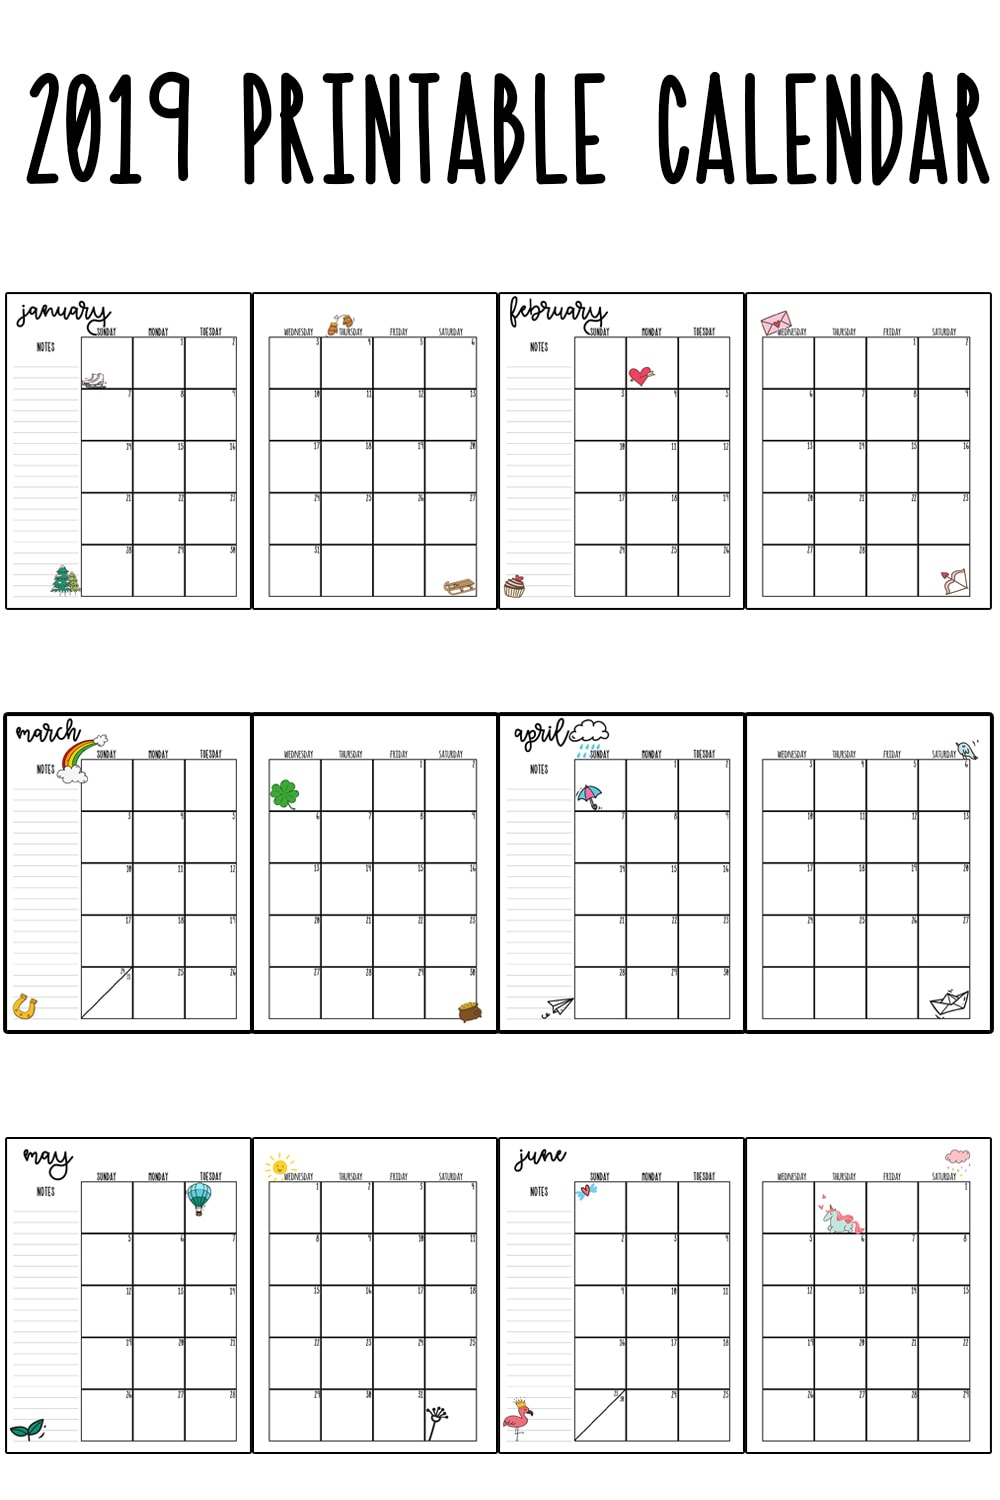 photo about Printable Monthly Calendars titled 2019 Printable Calendar